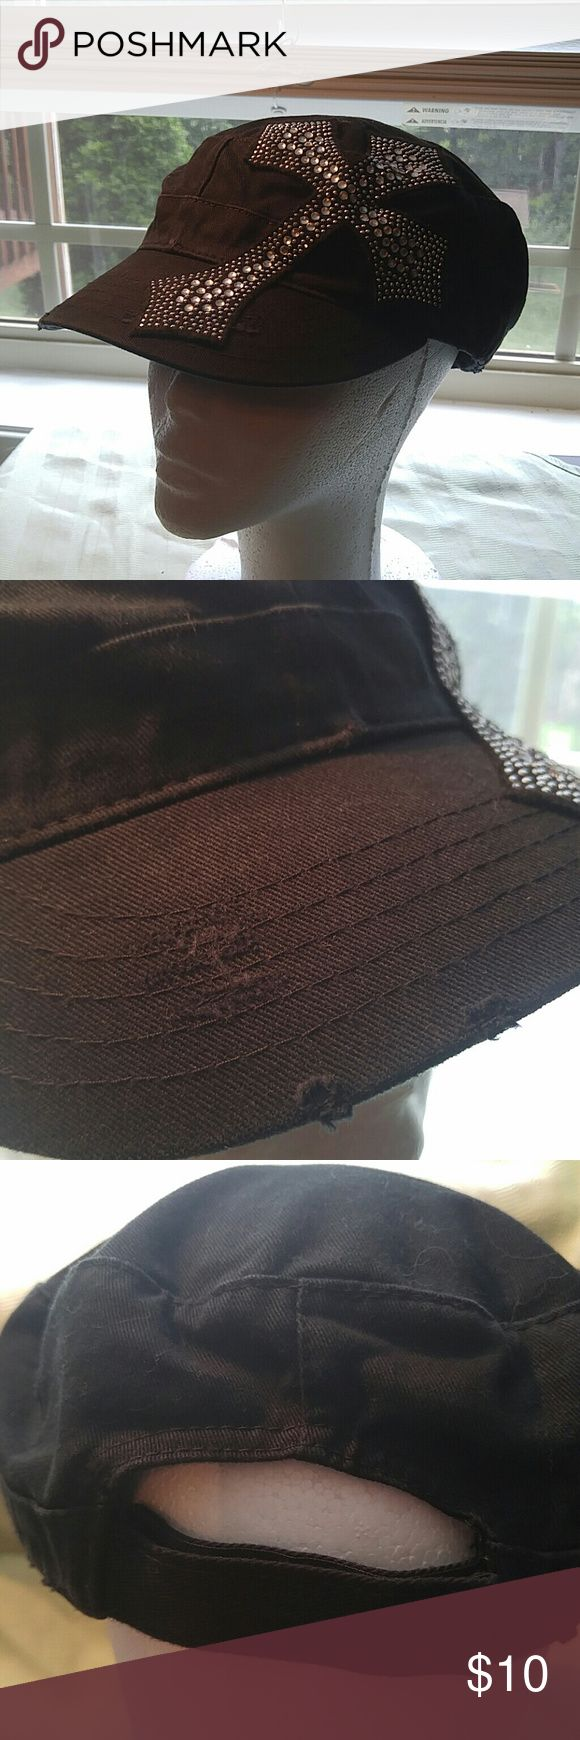 Olive Juice Black Military Hat w/Bling Cross Olive Juice Black Military Hat w/Bling Cross. Velcro closure. One size possibly....no Size found. Olive Juice Accessories Hats